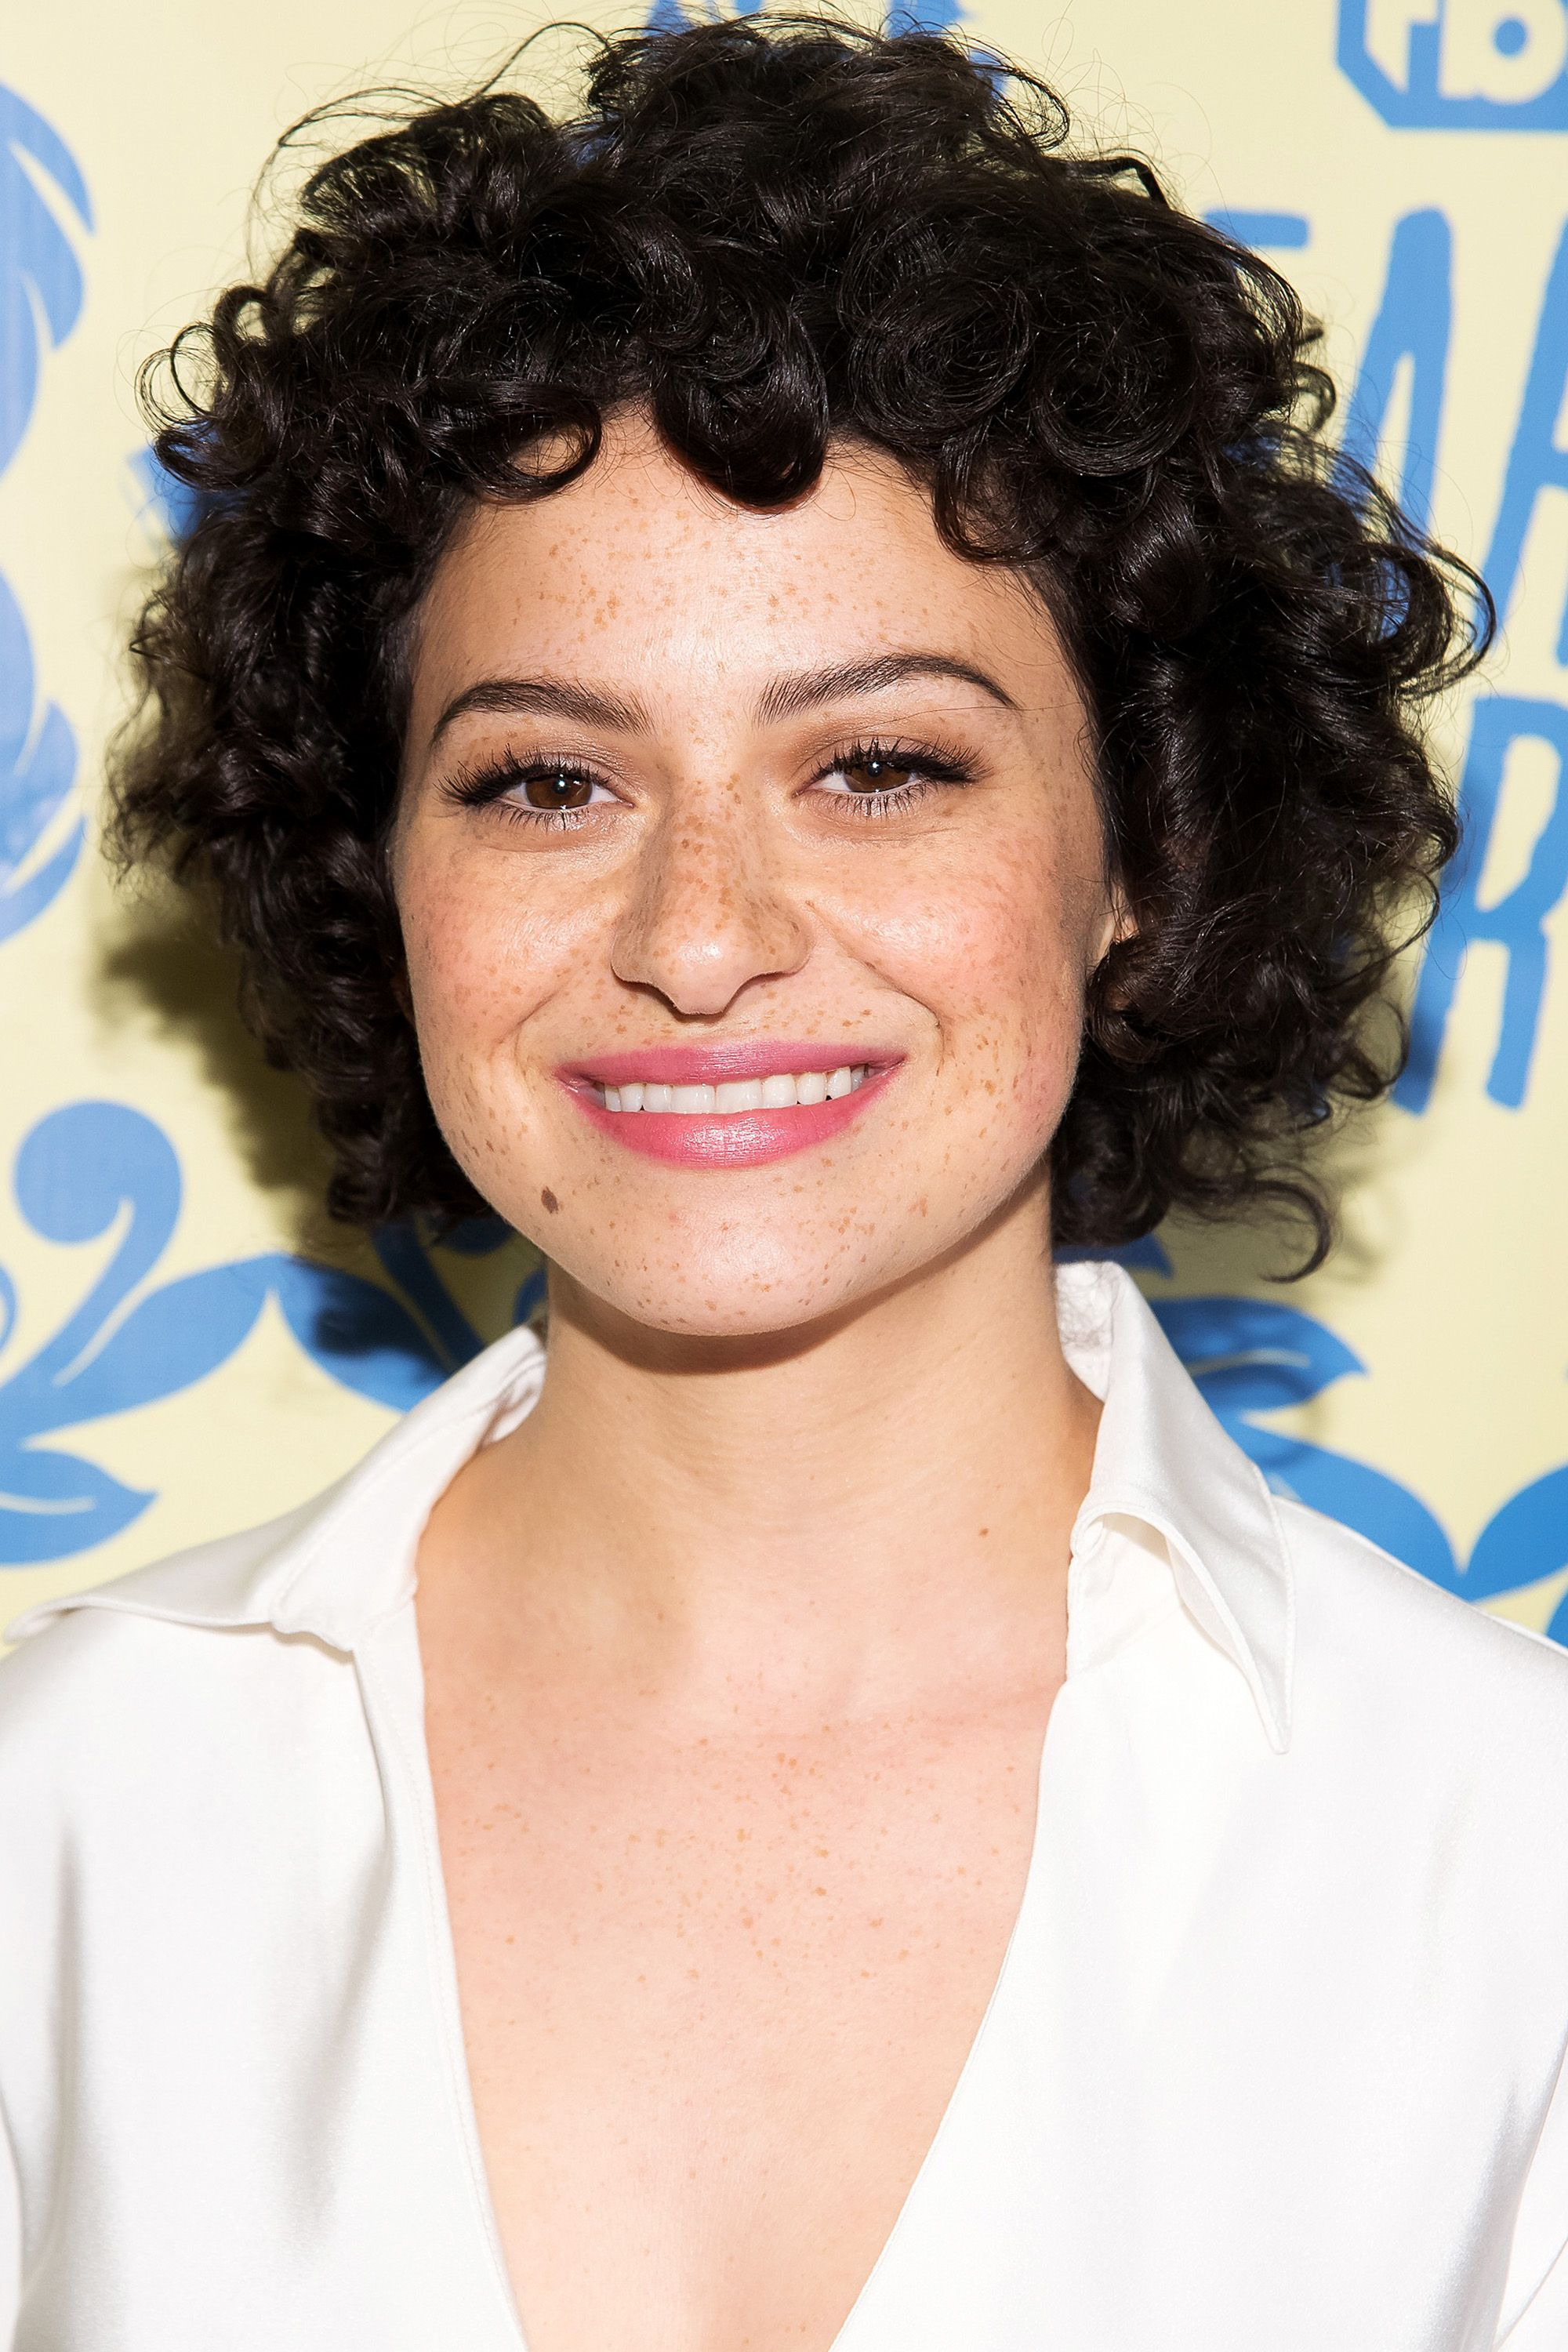 Hairstyles for Short 3c Curly Hair